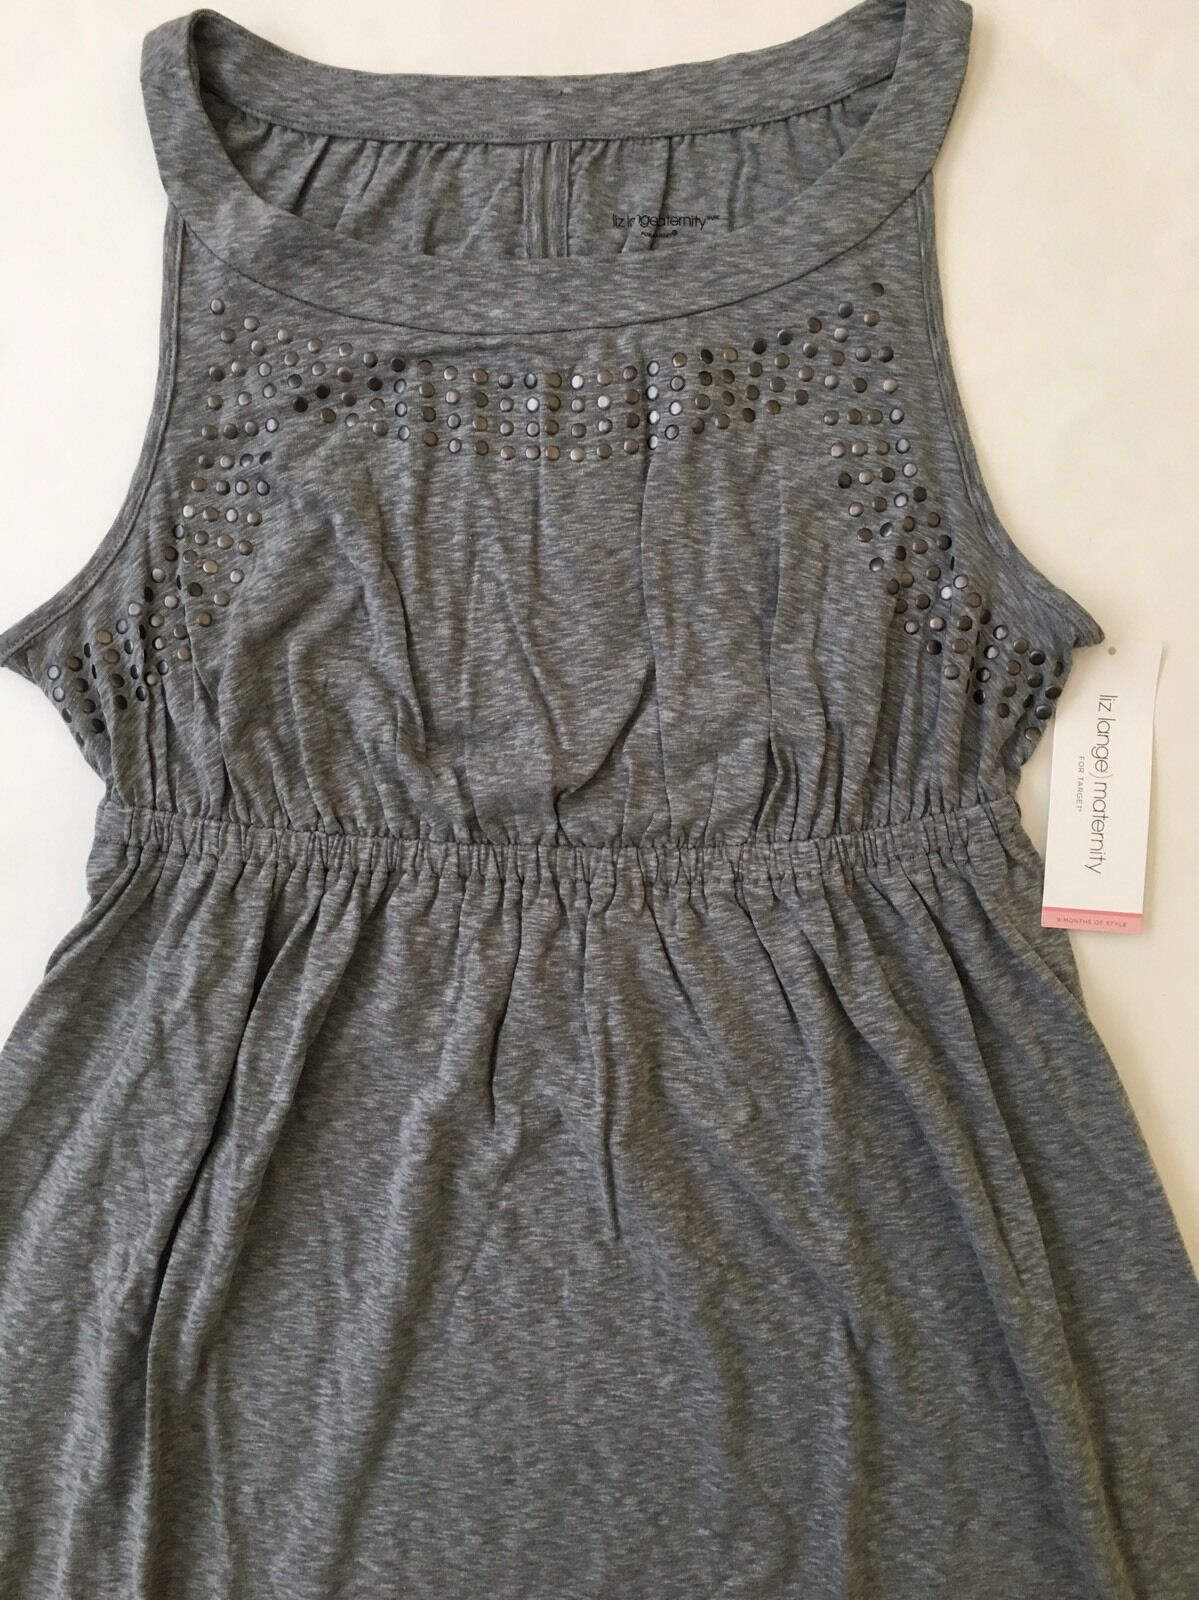 5457cde31dd4d NEW Liz Lange Knit Maternity Dress - Grey Size M 1 of 7Only 5 available ...